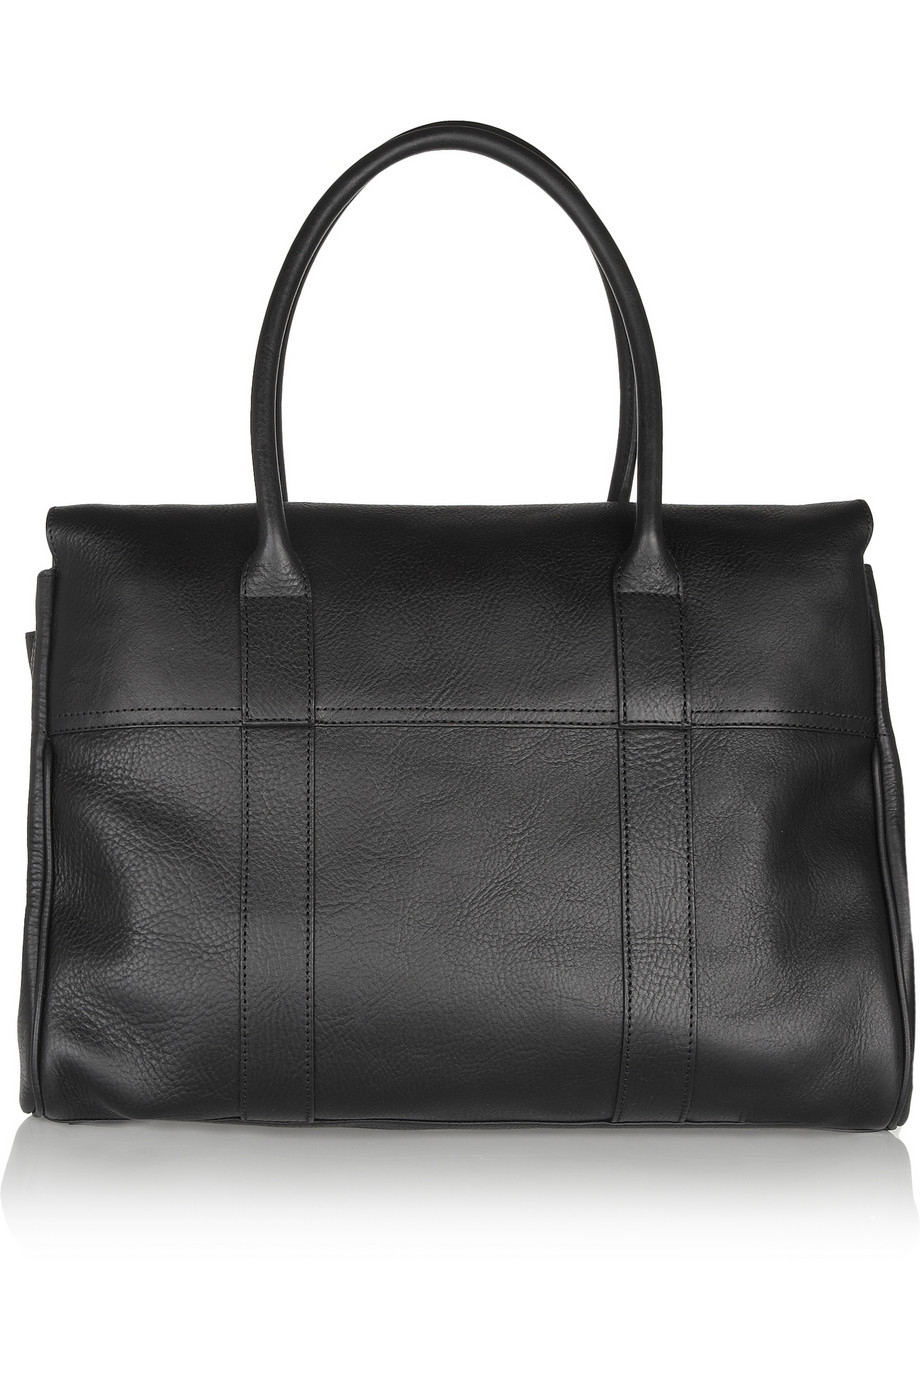 Mulberry the bayswater textured leather bag in black lyst for The bayswater